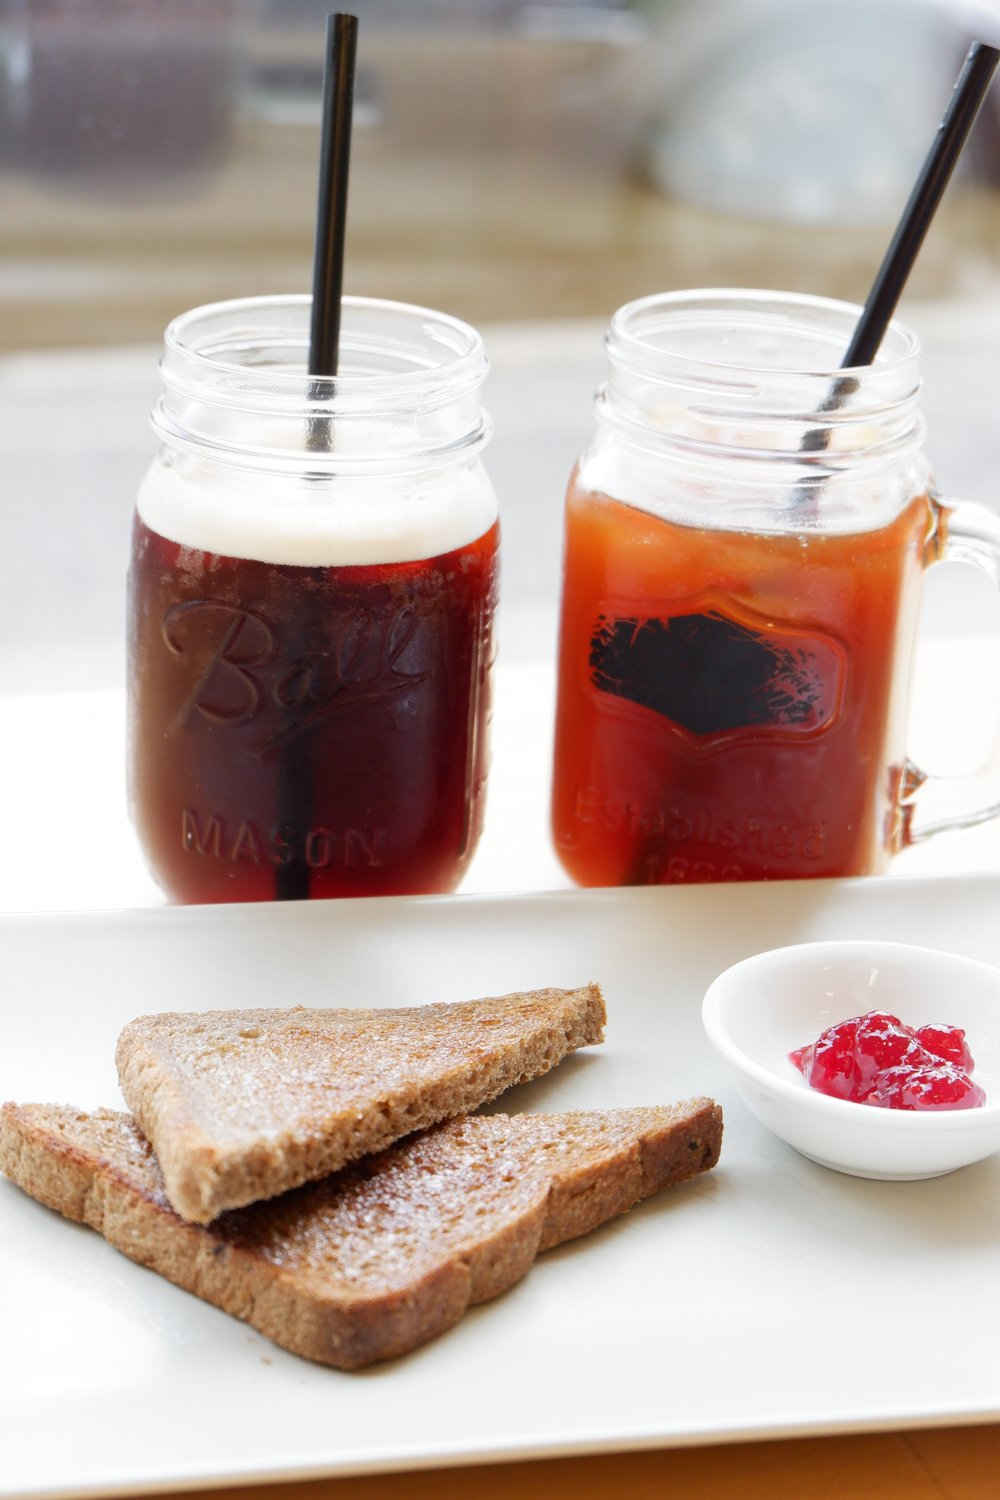 Cold-coffee-and-jam-with-toast